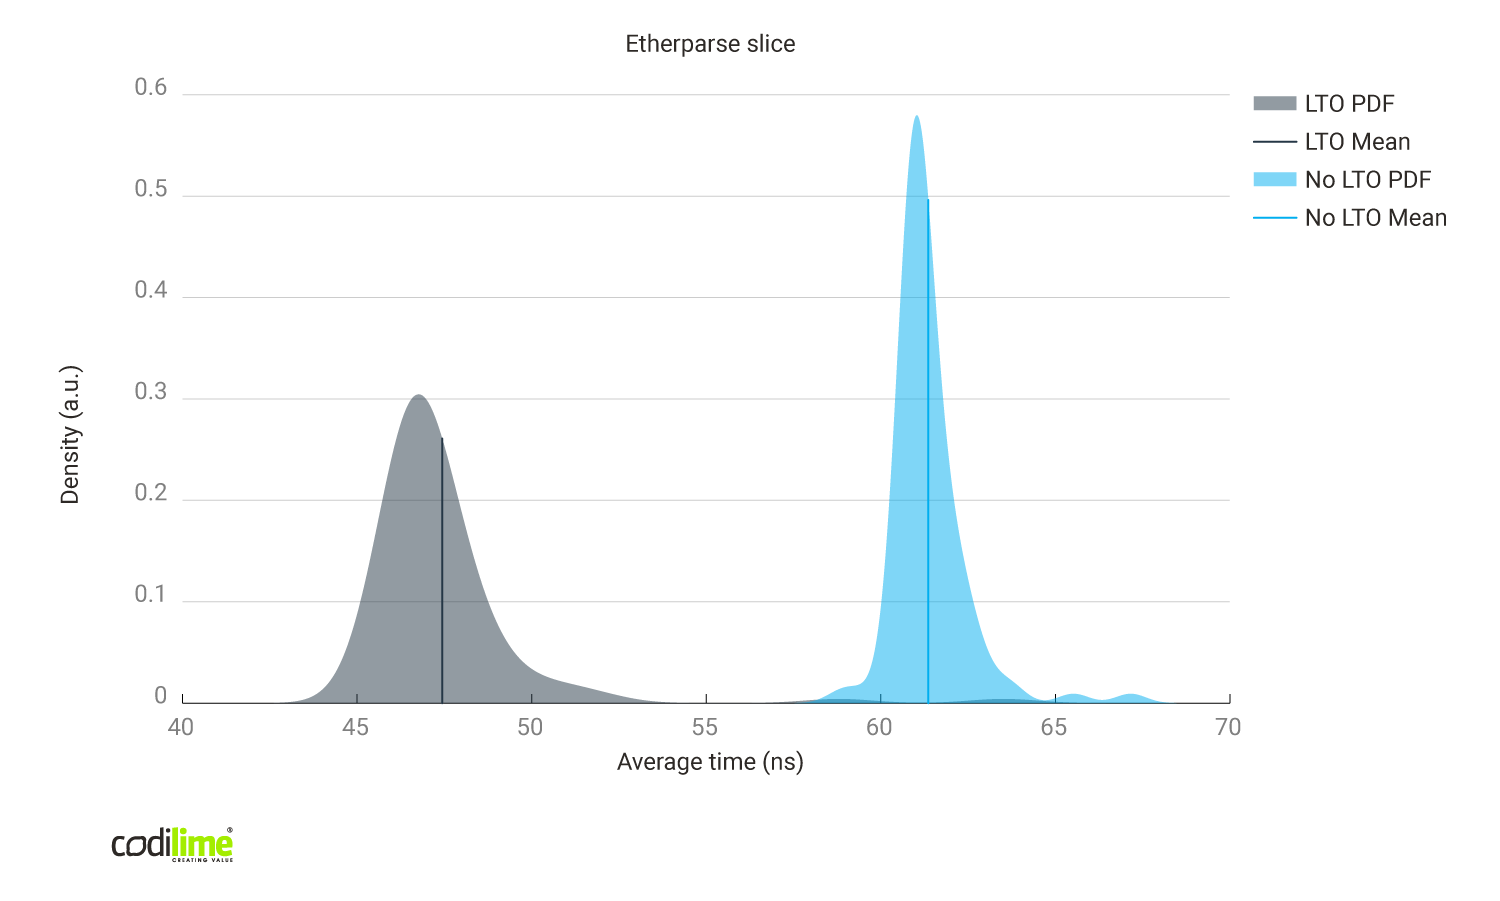 Link time optimizations enabled vs disabled using Etherparse library